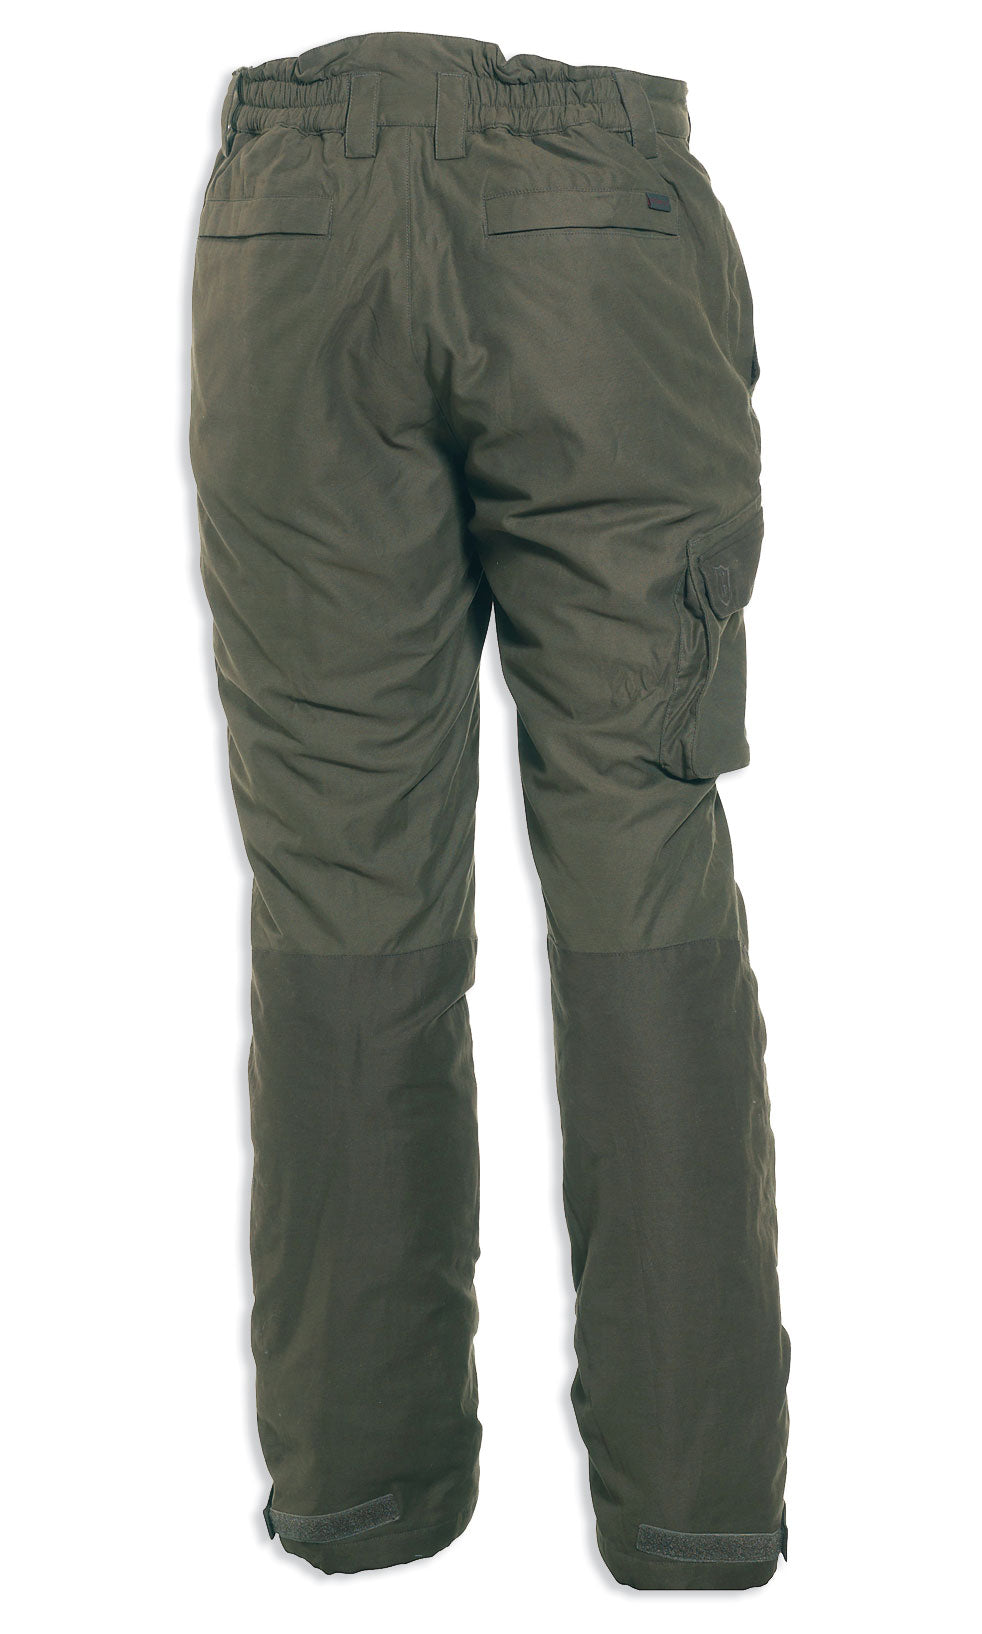 Deerhunter Saarland Trousers hunting trousers in fallen leaf green